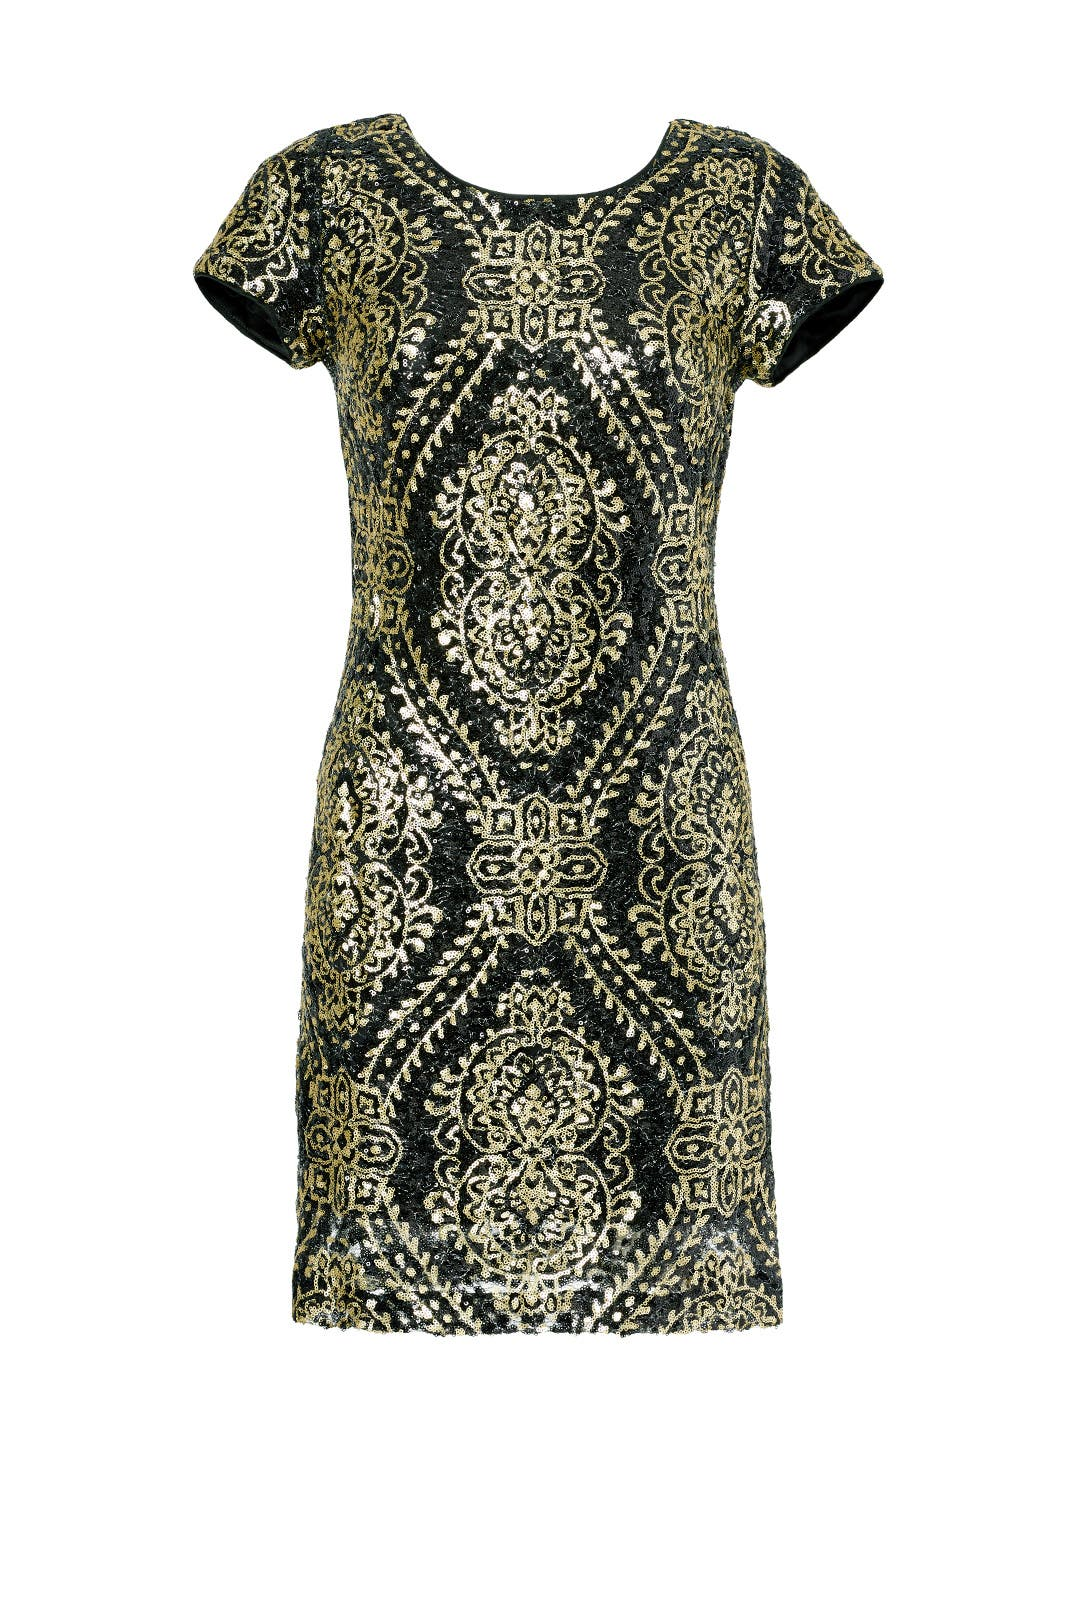 Mae Sequin Shift by Slate & Willow